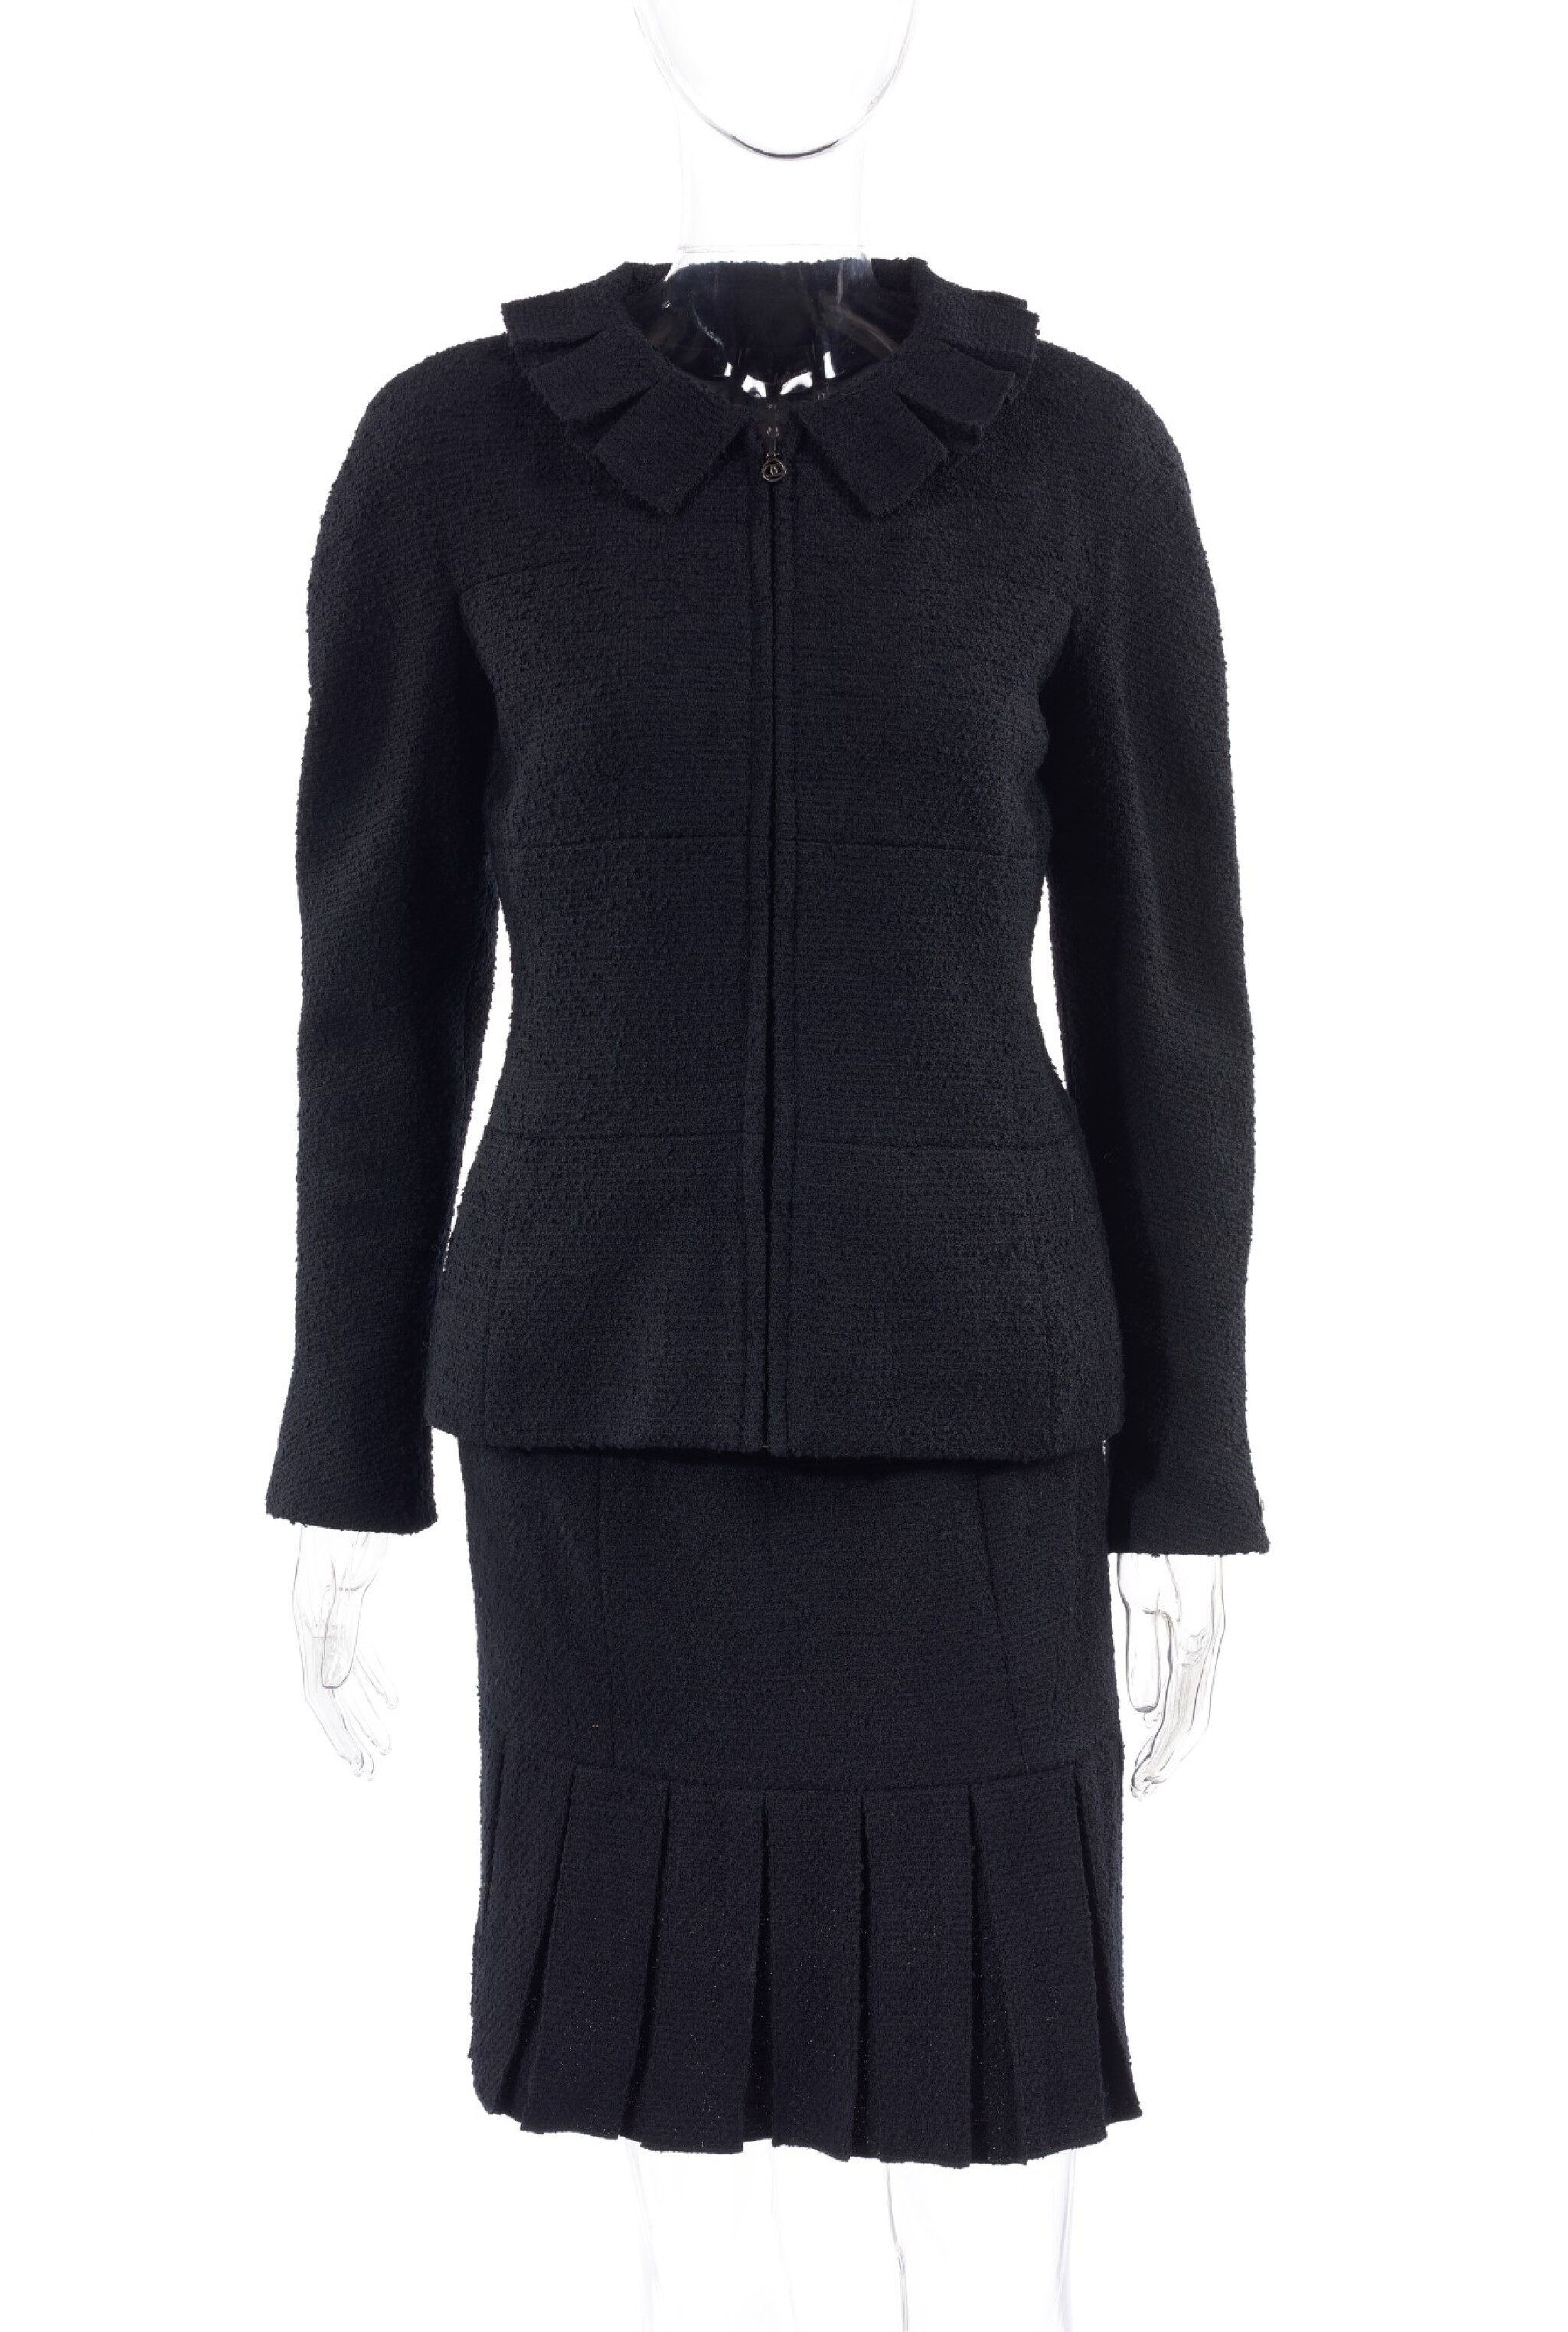 A MIDNIGHT BLUE WOOL-BLEND SKIRT SUIT, CHANEL